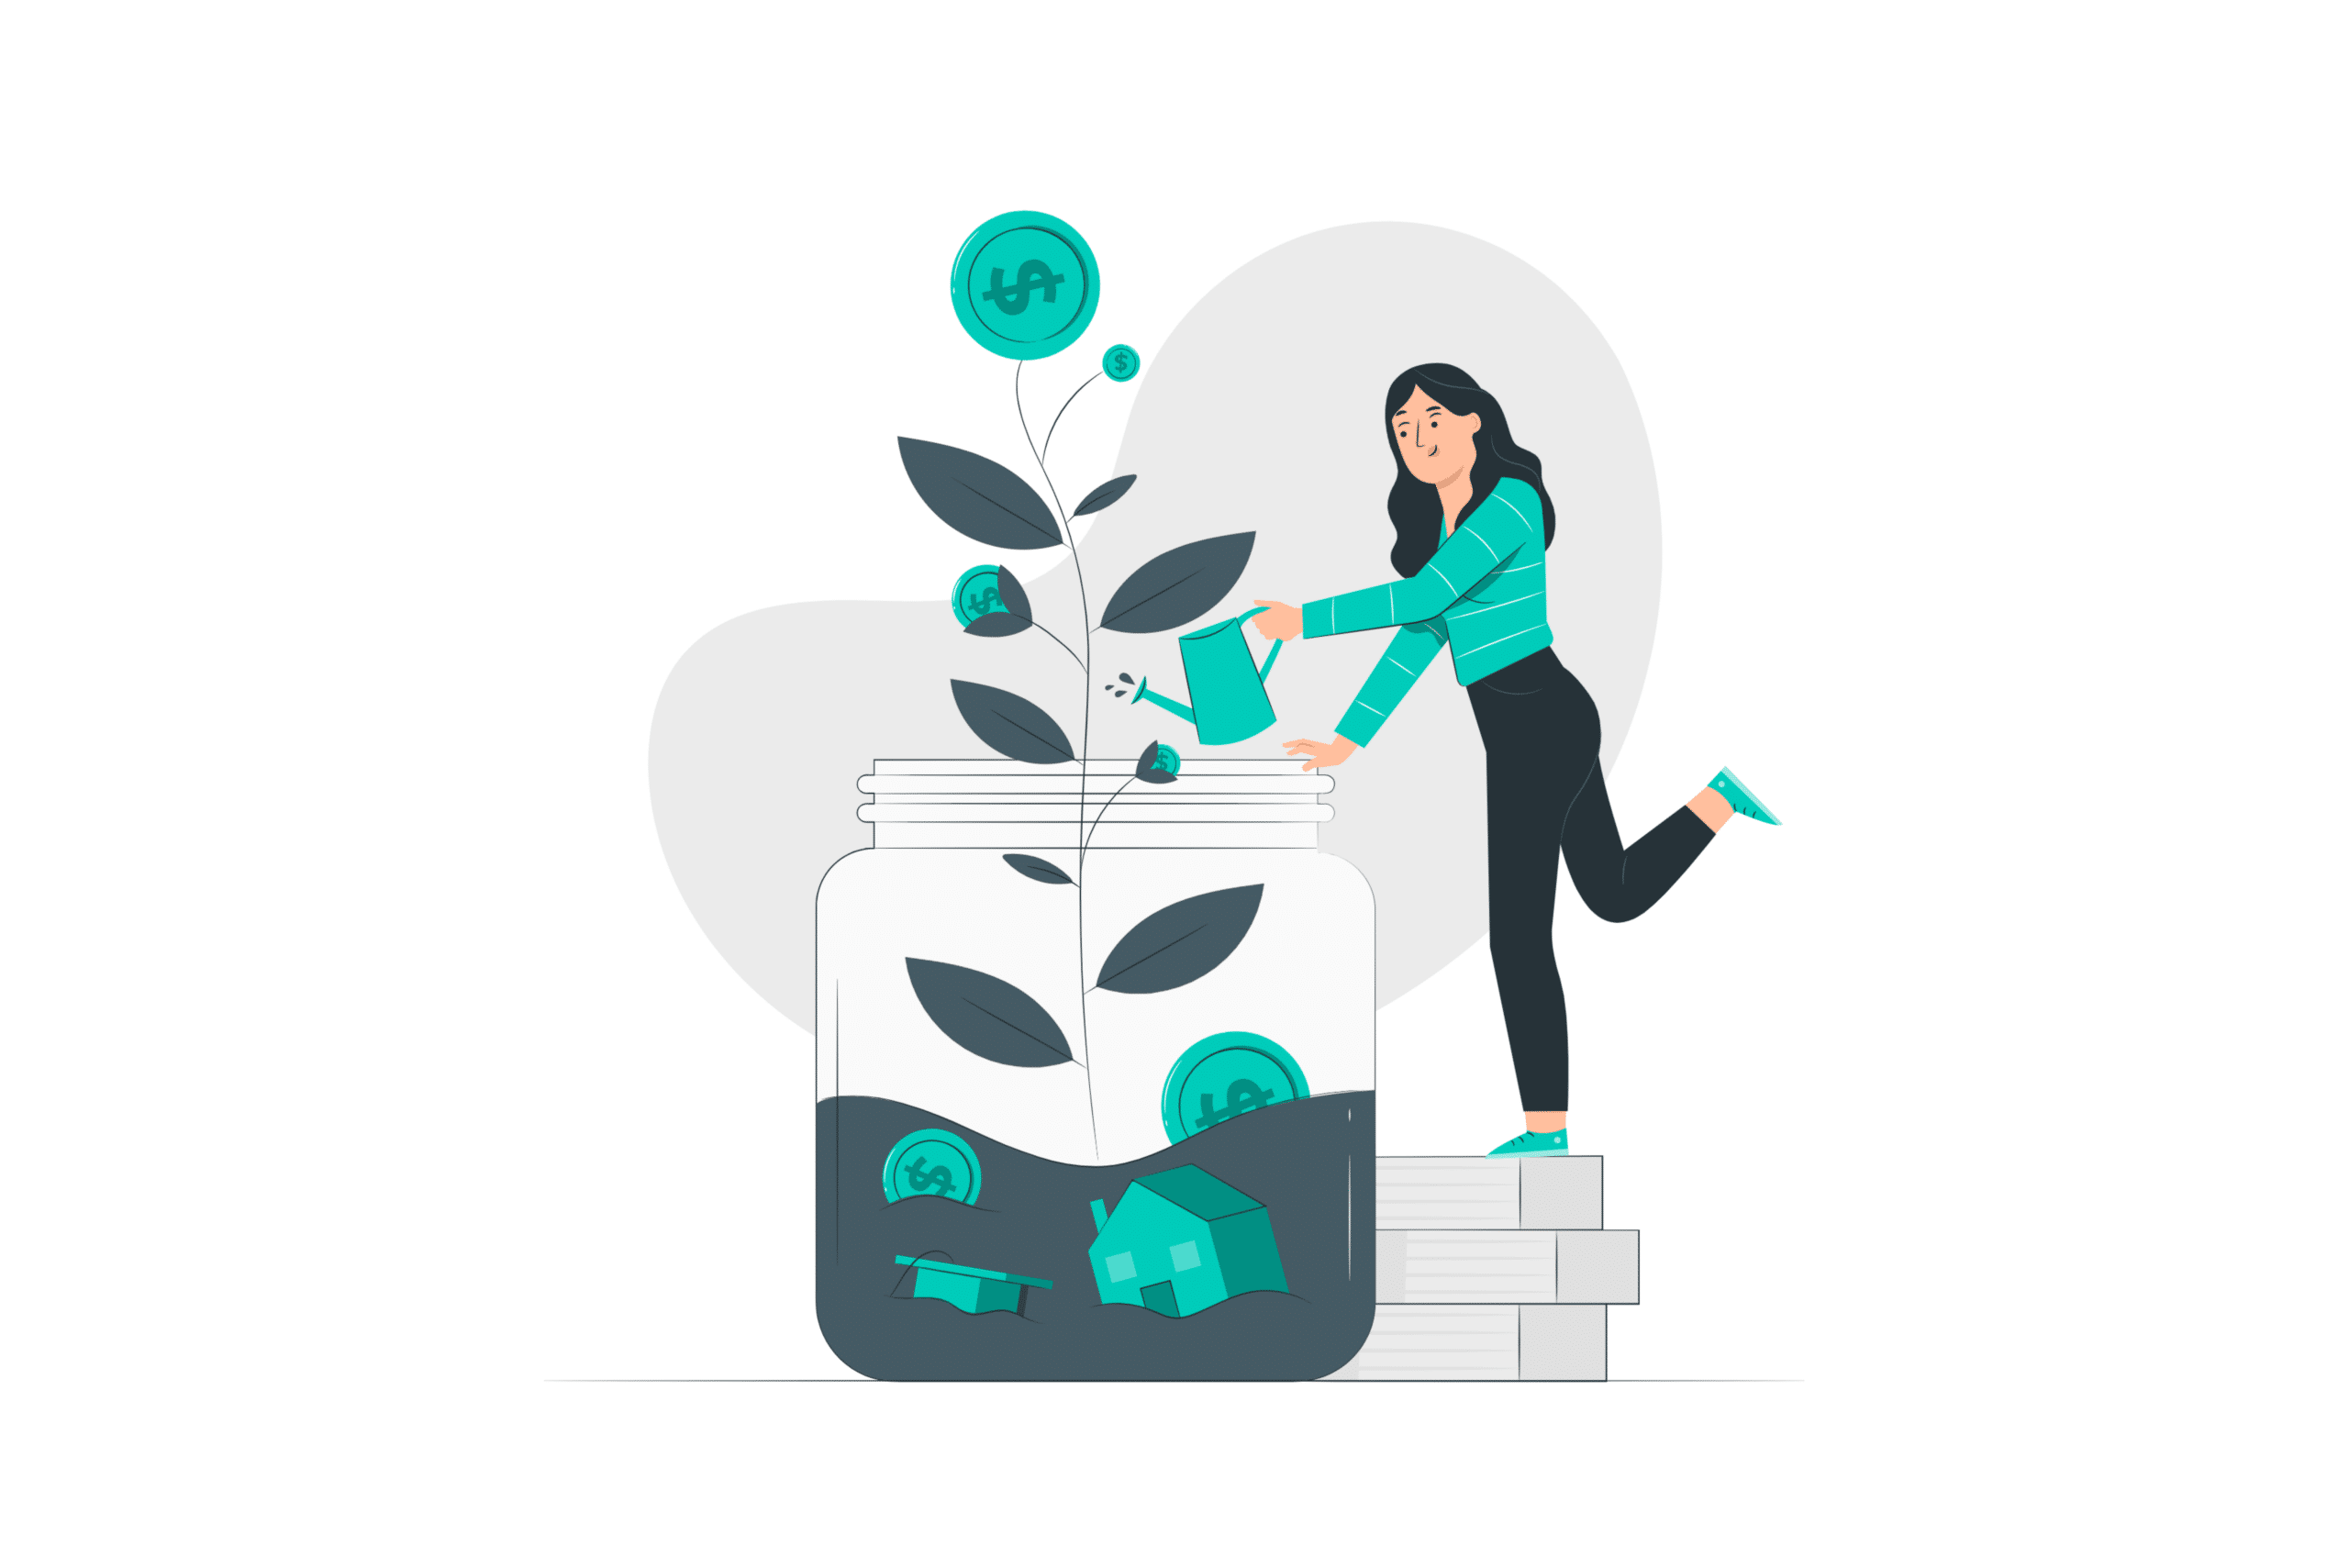 illustration about someone taking care of a investment